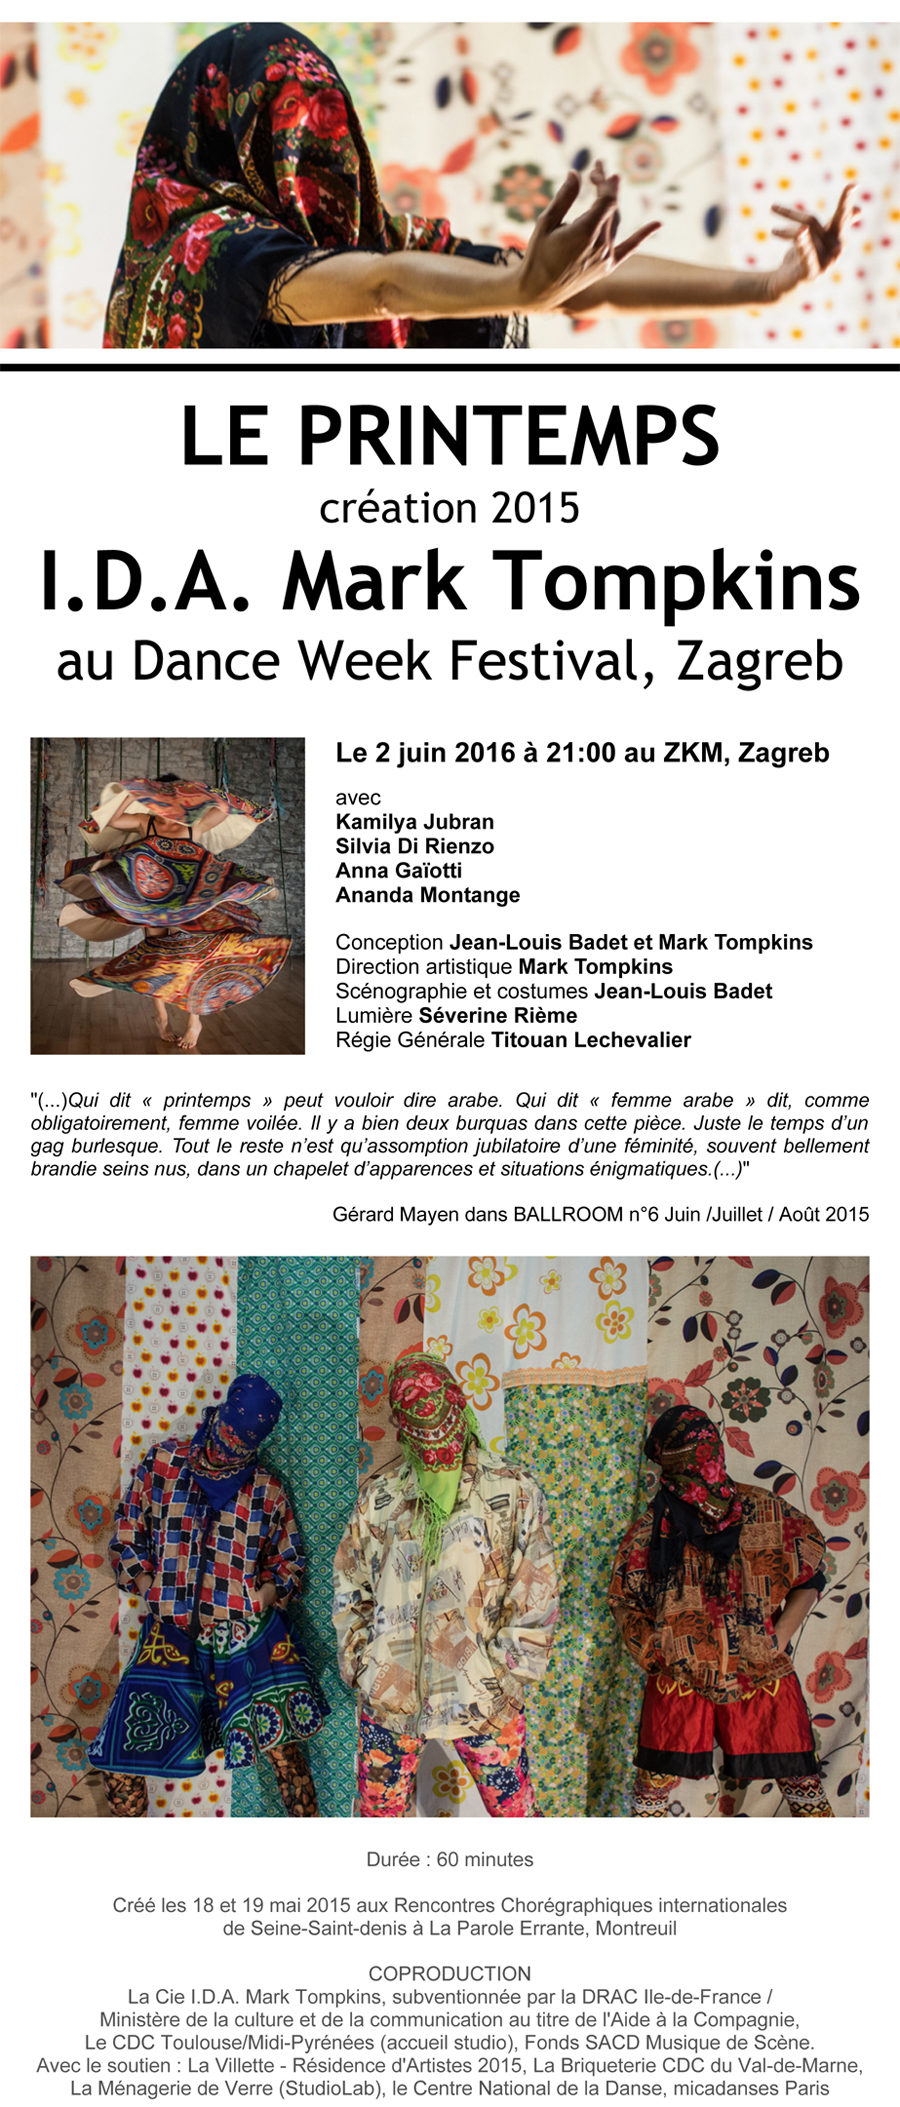 LE PRINTEMPS de Mark Tompkins, le 2 juin 2016 au DANCE WEEK FEST